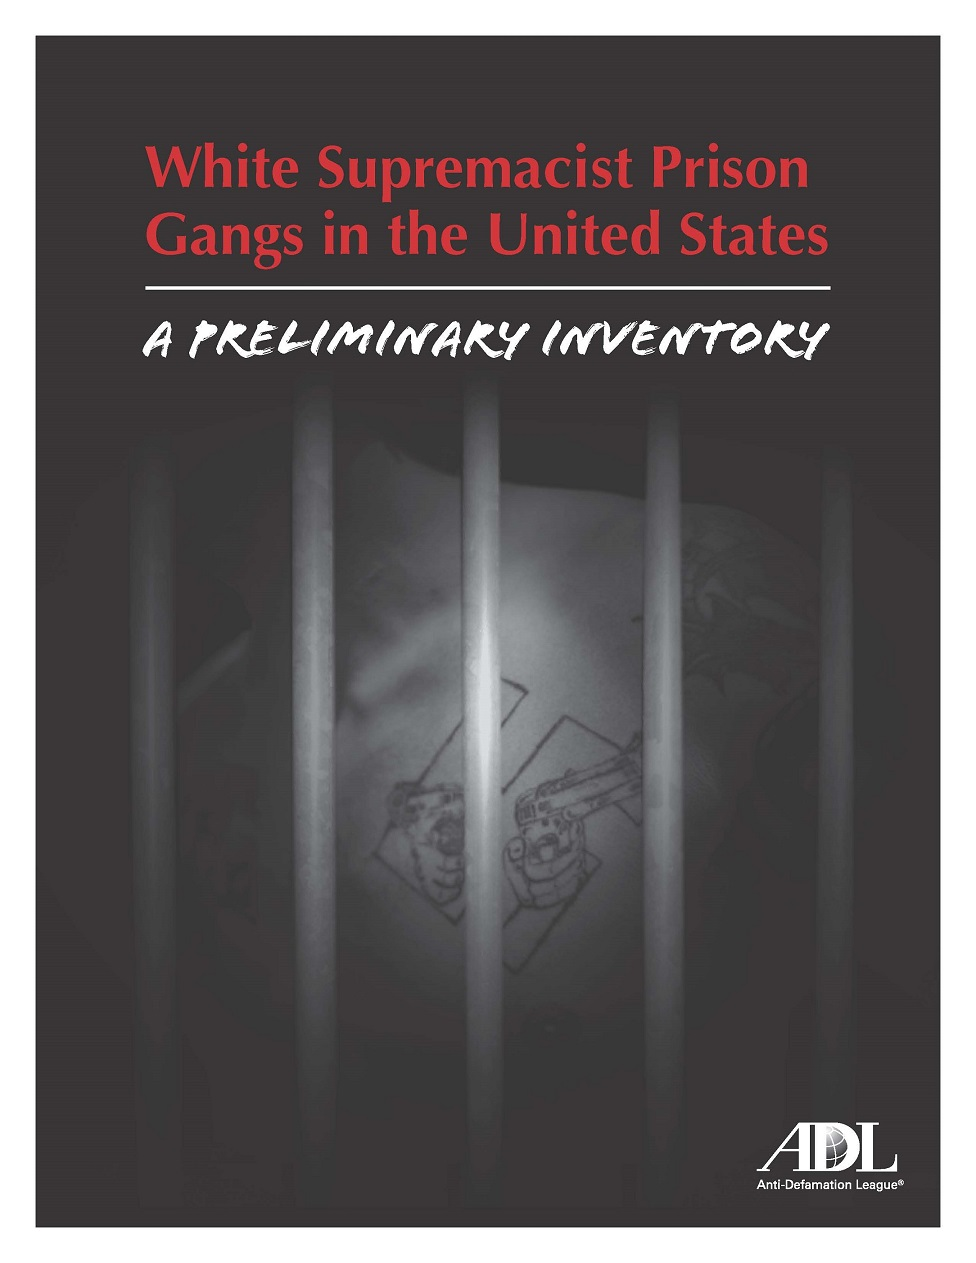 White Supremacist Prison Gang Report